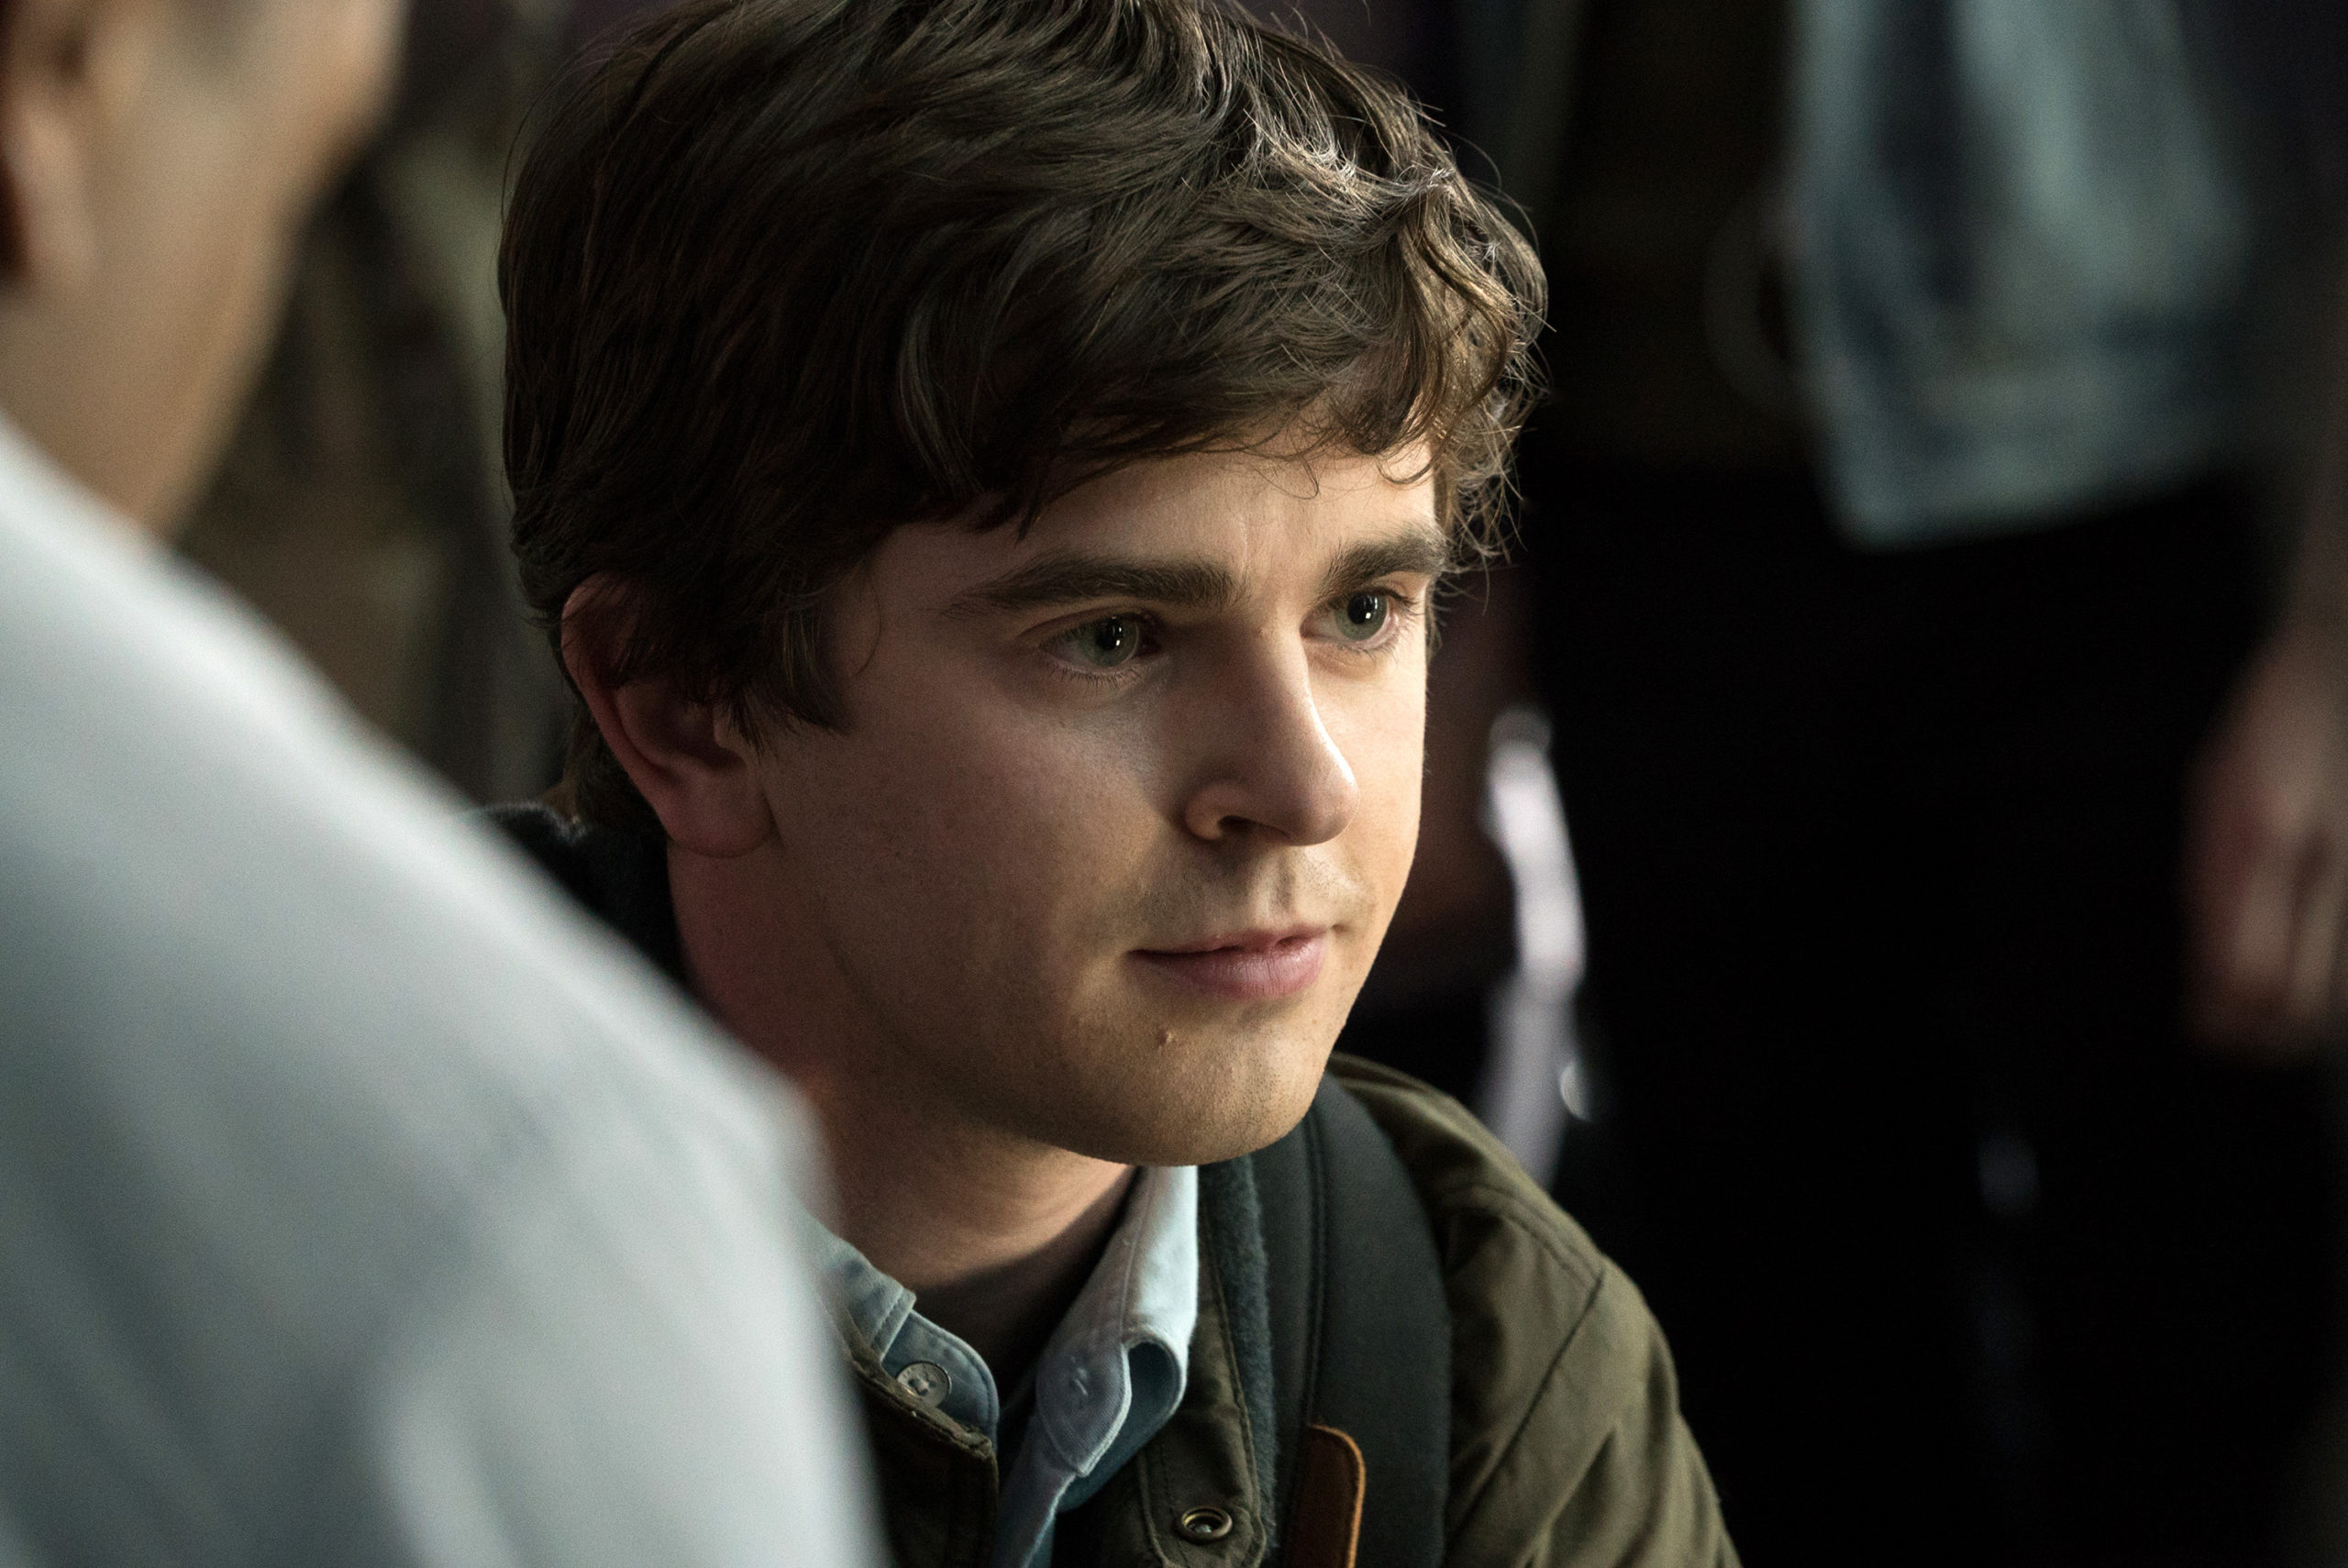 The Good Doctor - FREDDIE HIGHMORE